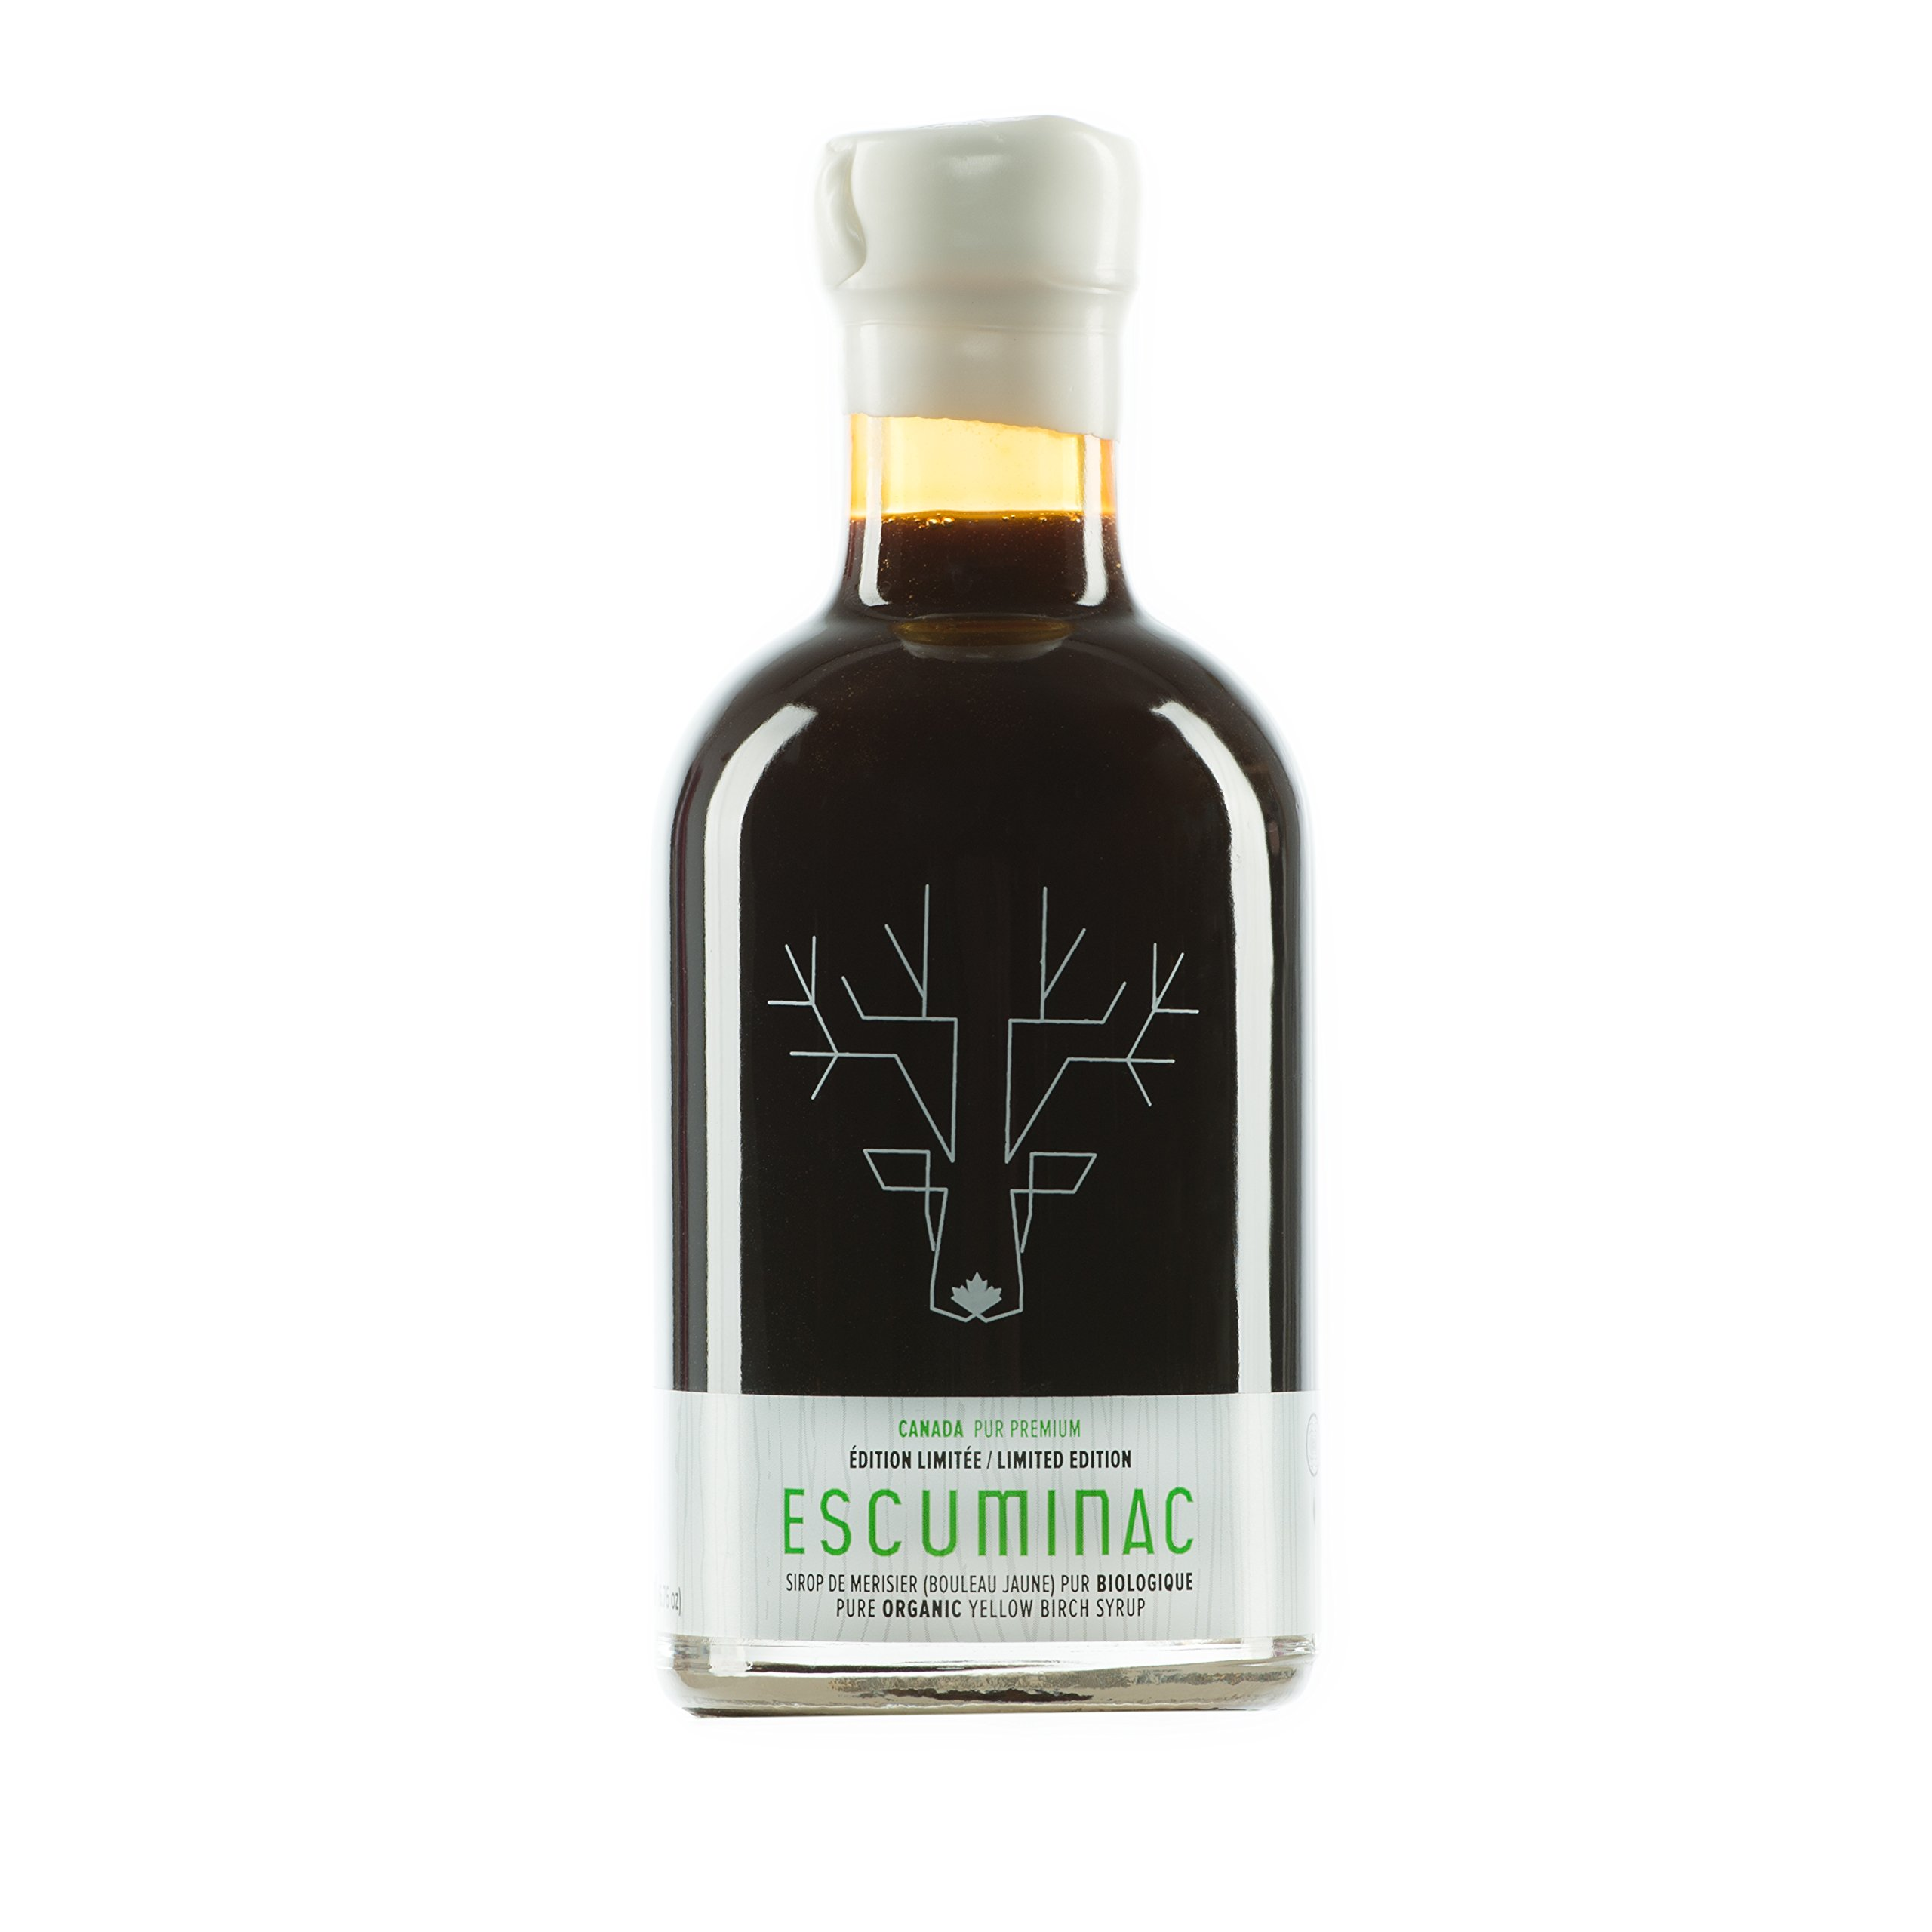 Award Winning Escuminac Canadian Yellow Birch Syrup - Dark Robust - Limited Edition - Pure Organic - 6.8 fl oz (200ml) - SIAL Canada's Trends And Innovations Award 2011